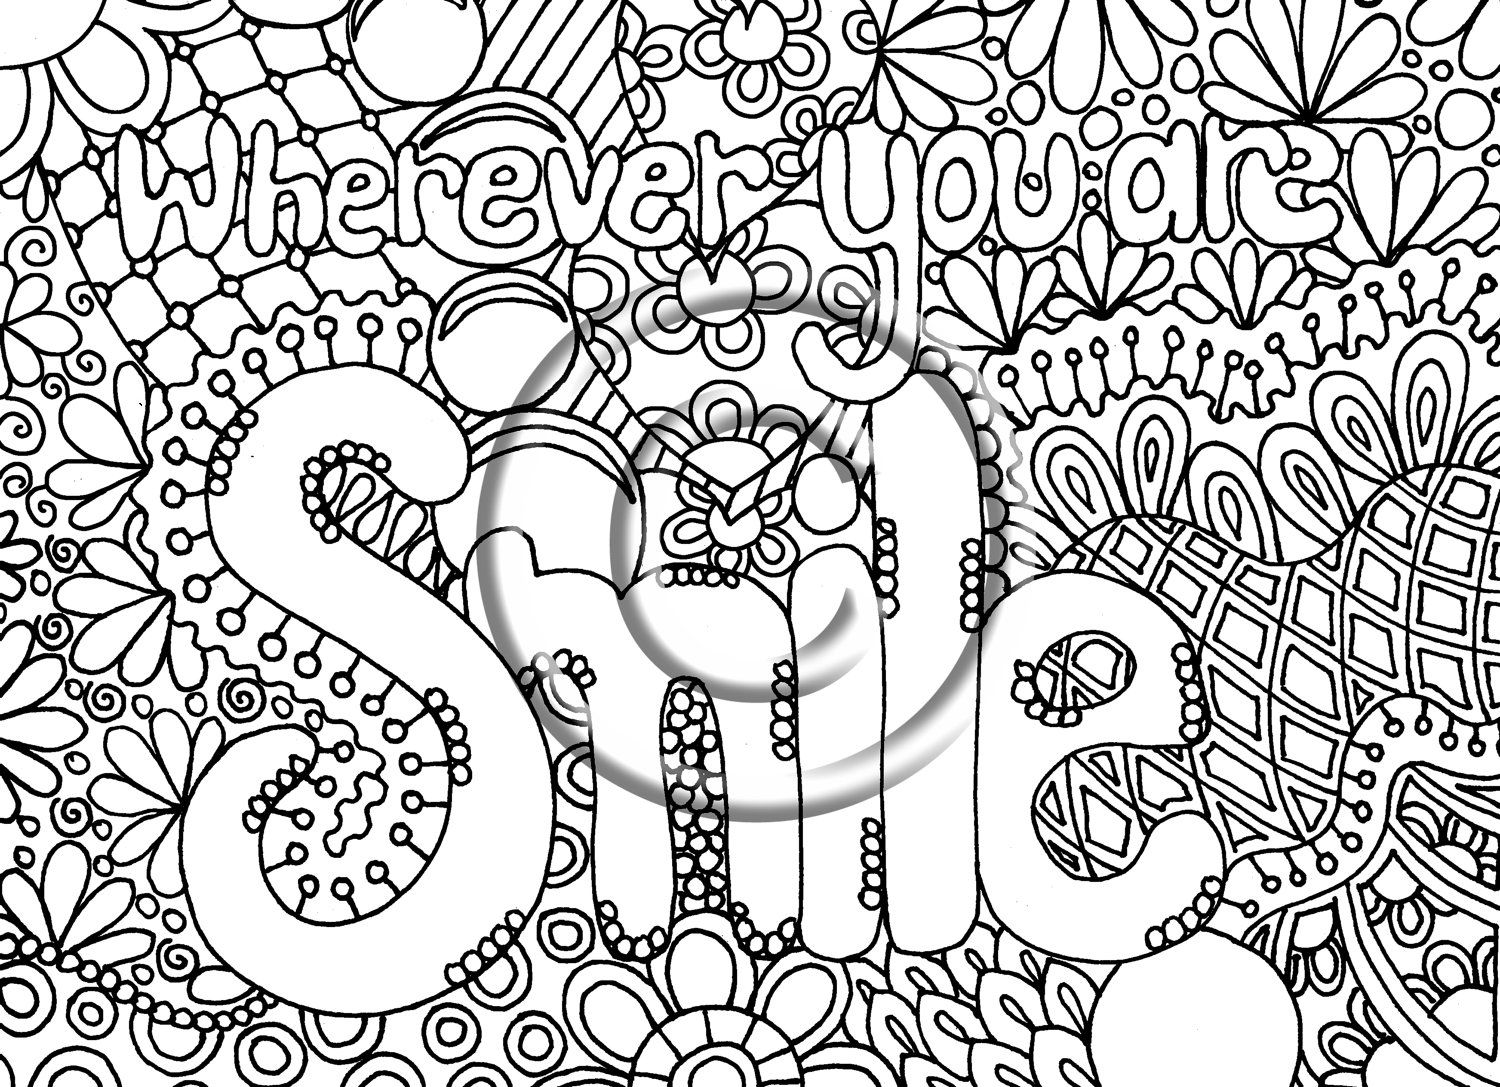 Free coloring pages for adults abstract - Abstract Color Pages Printable Mandala Colouring Pages For Adults Free Printable Abstract Coloring Pages For Adults Captivating Printable Abstract Coloring